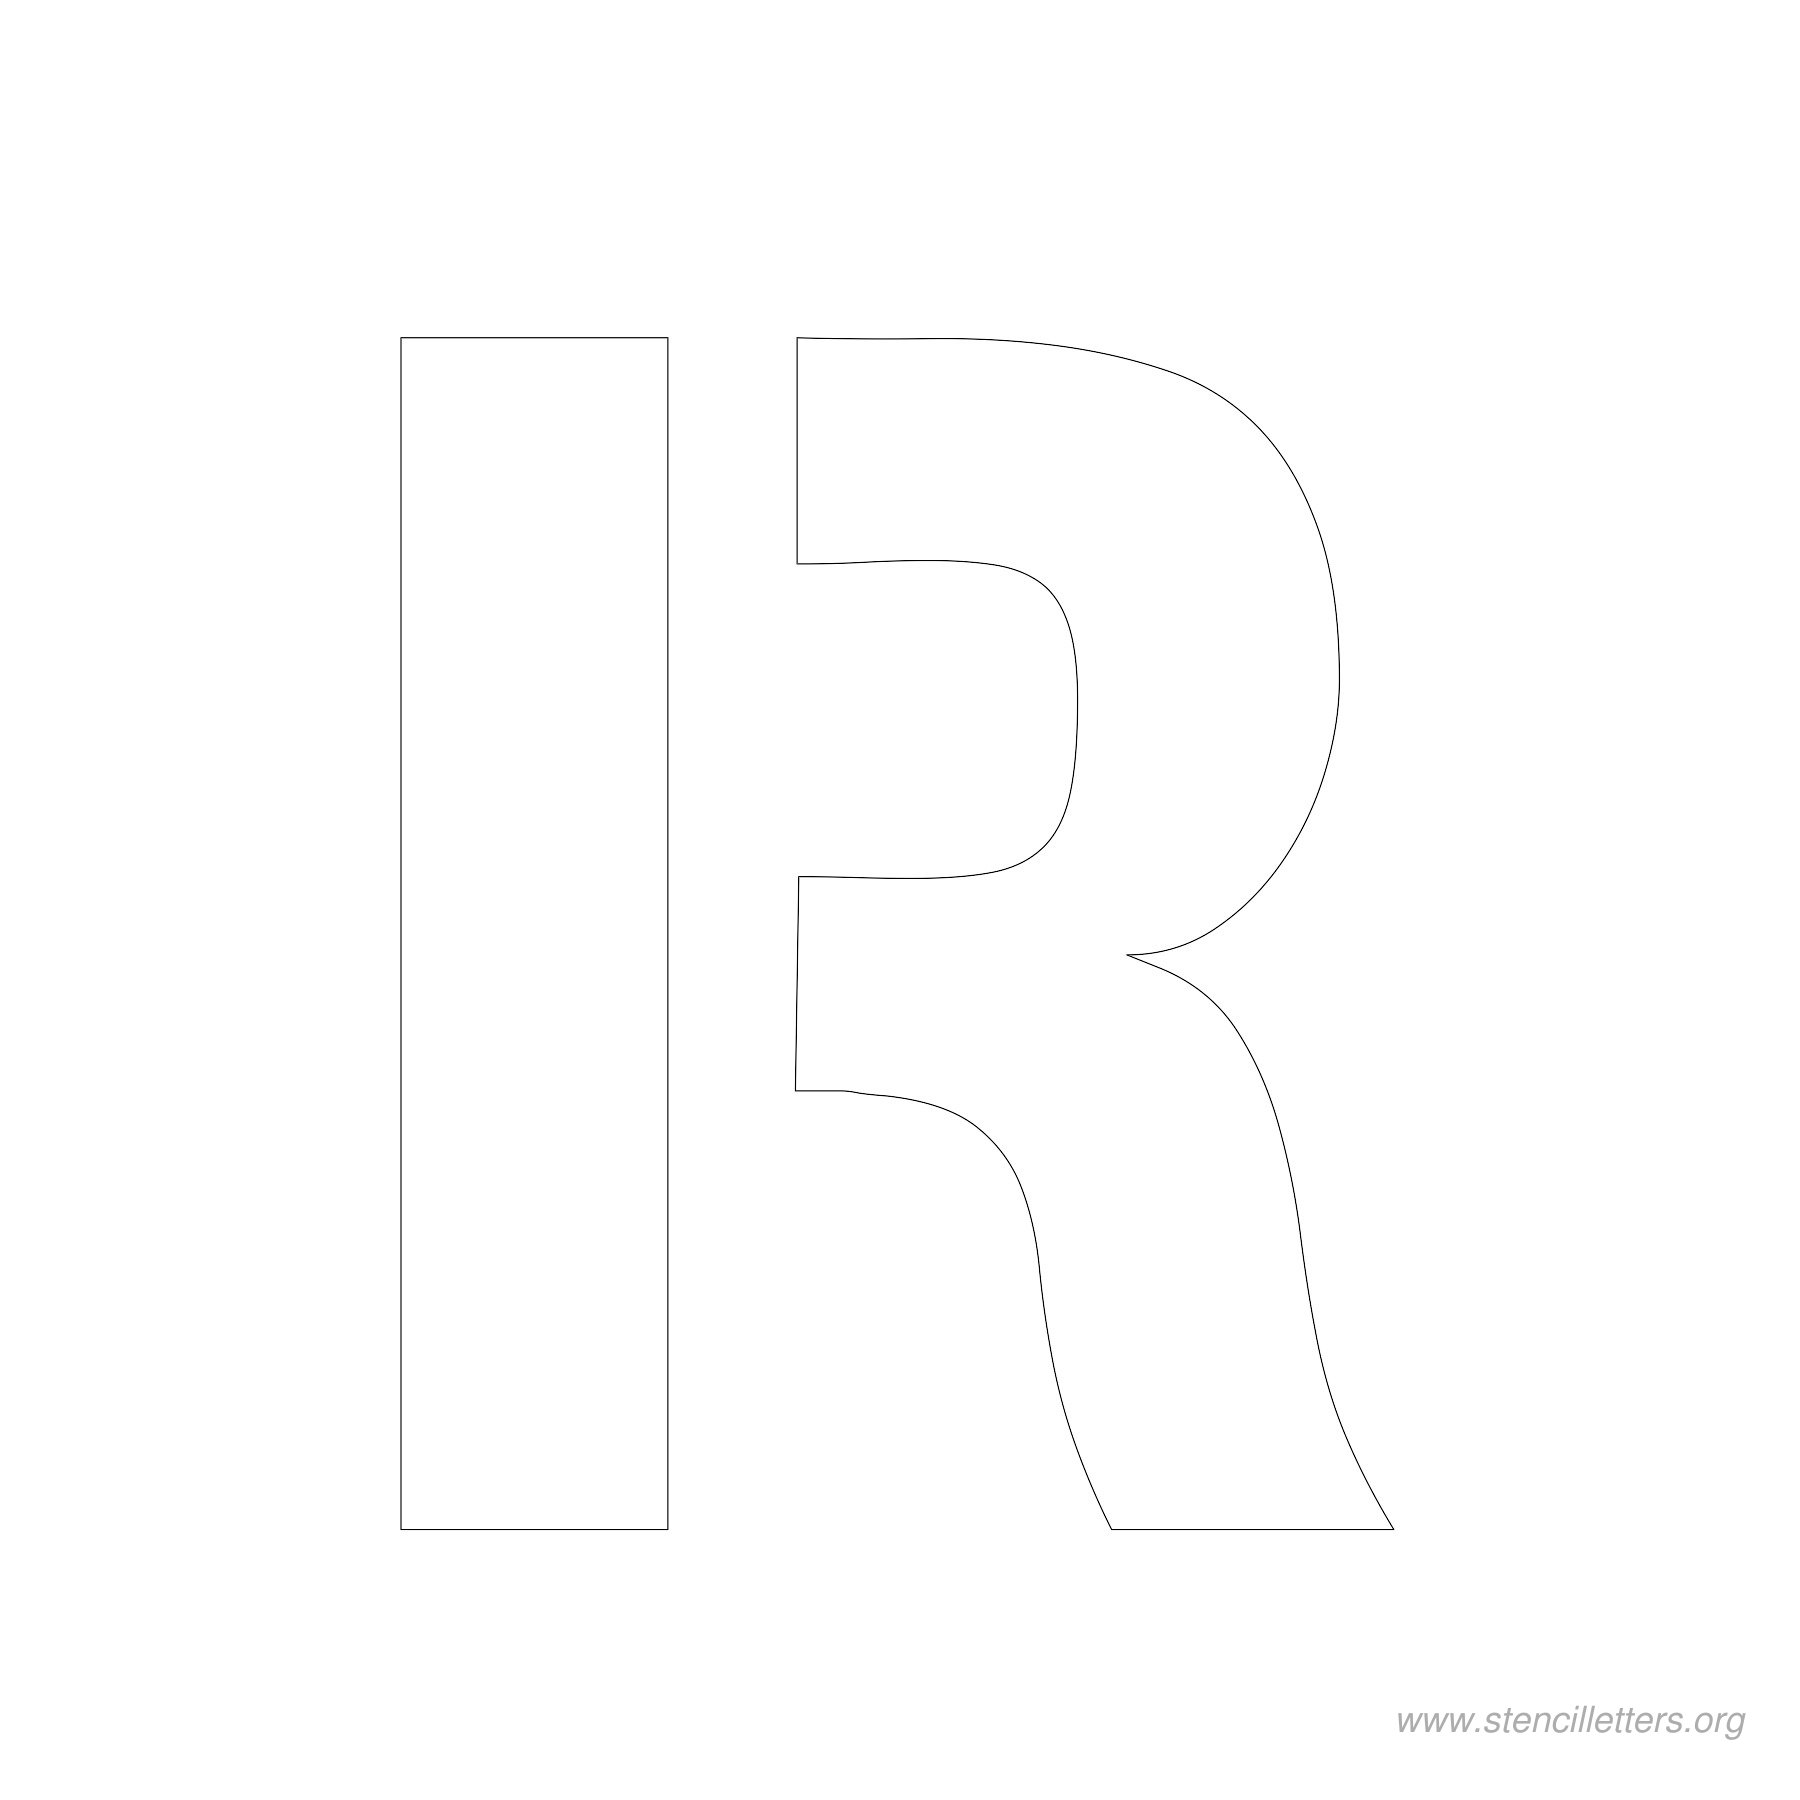 4inch-stencil-letter-r  Inch Letter Templates Free on 2 inch letters printable free, 4 inch alphabet templates, 5 inch letter stencils printable free, 4 inch number templates, 4 inch printable letters free font, large letter templates free, 1 5 inch alphabet letter patterns free,